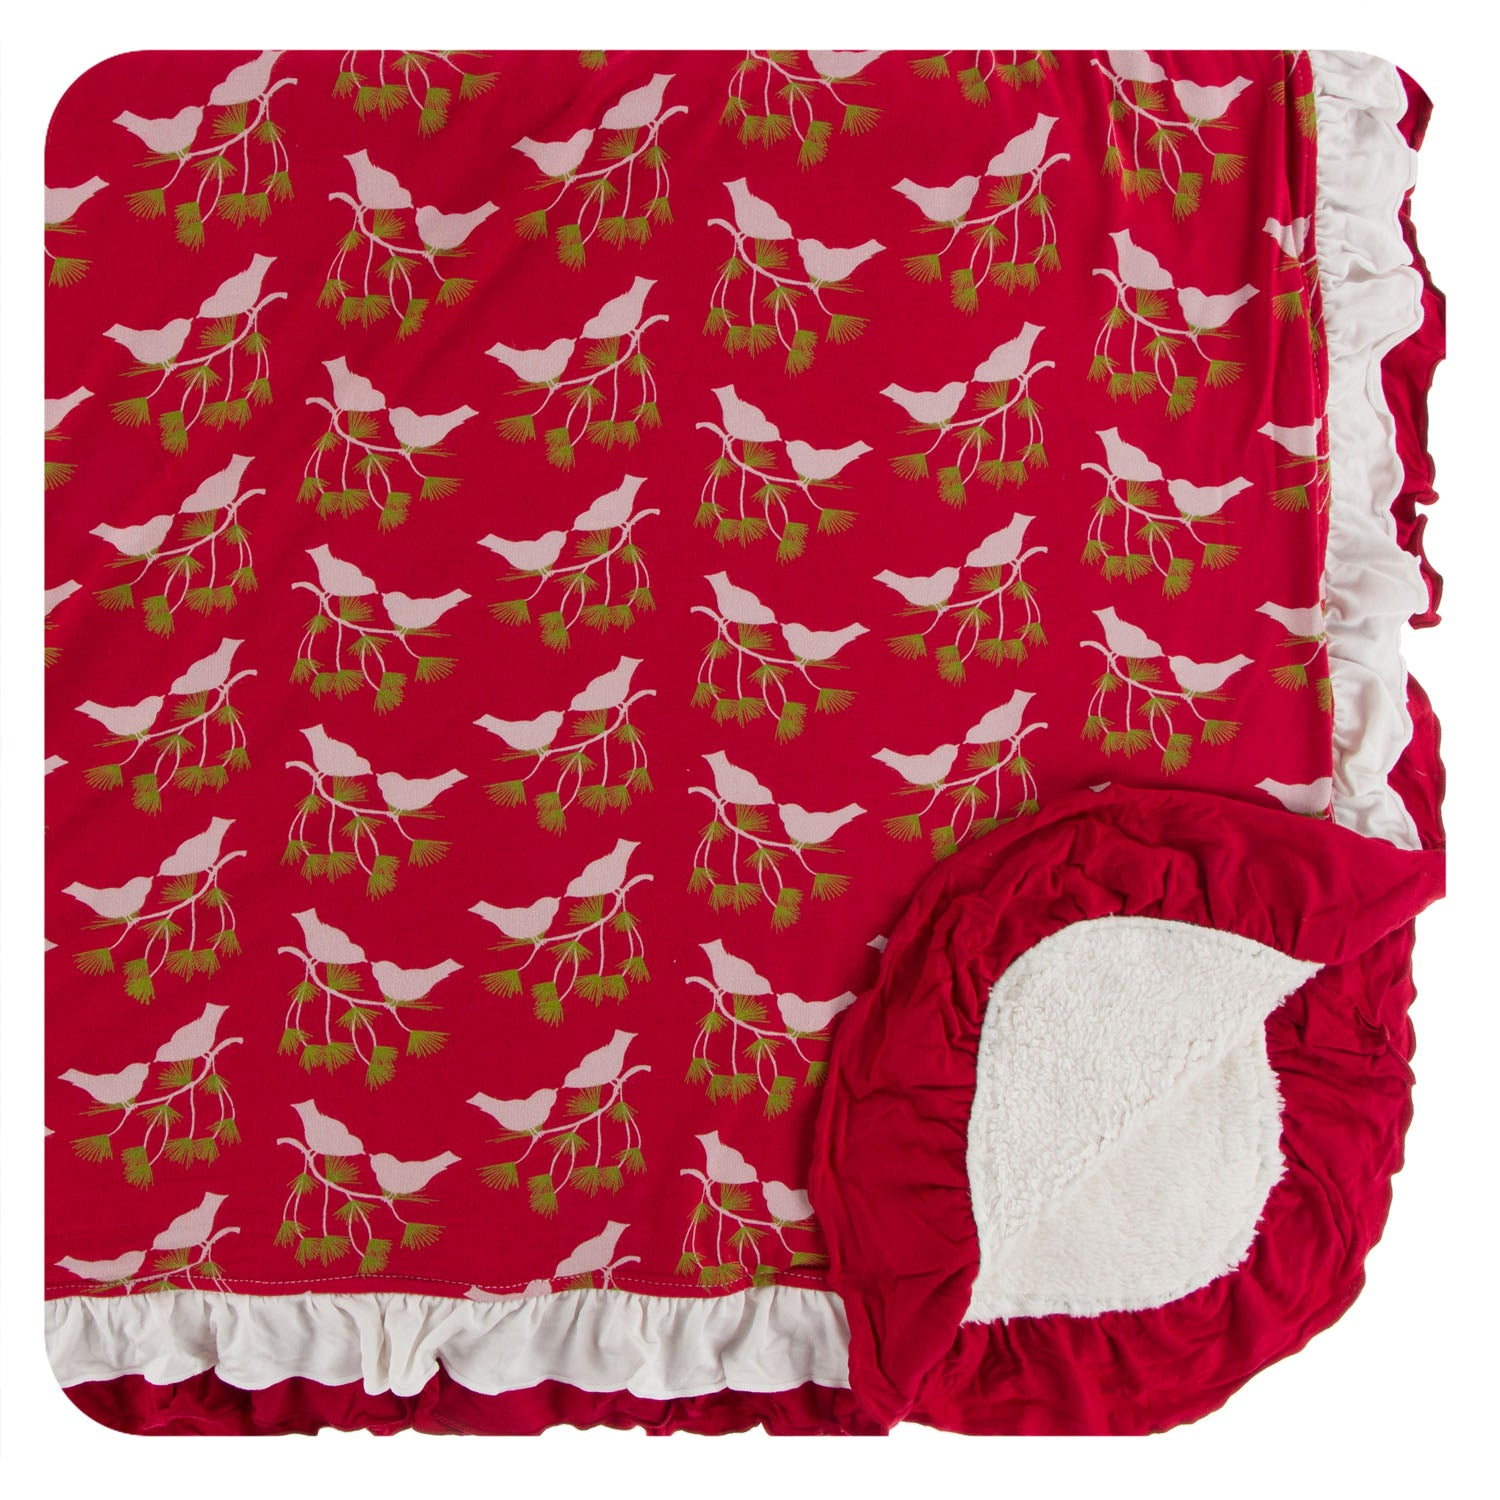 KicKee Pants Sherpa Lined Double Ruffle Toddler Blanket - Crimson Kissing Birds